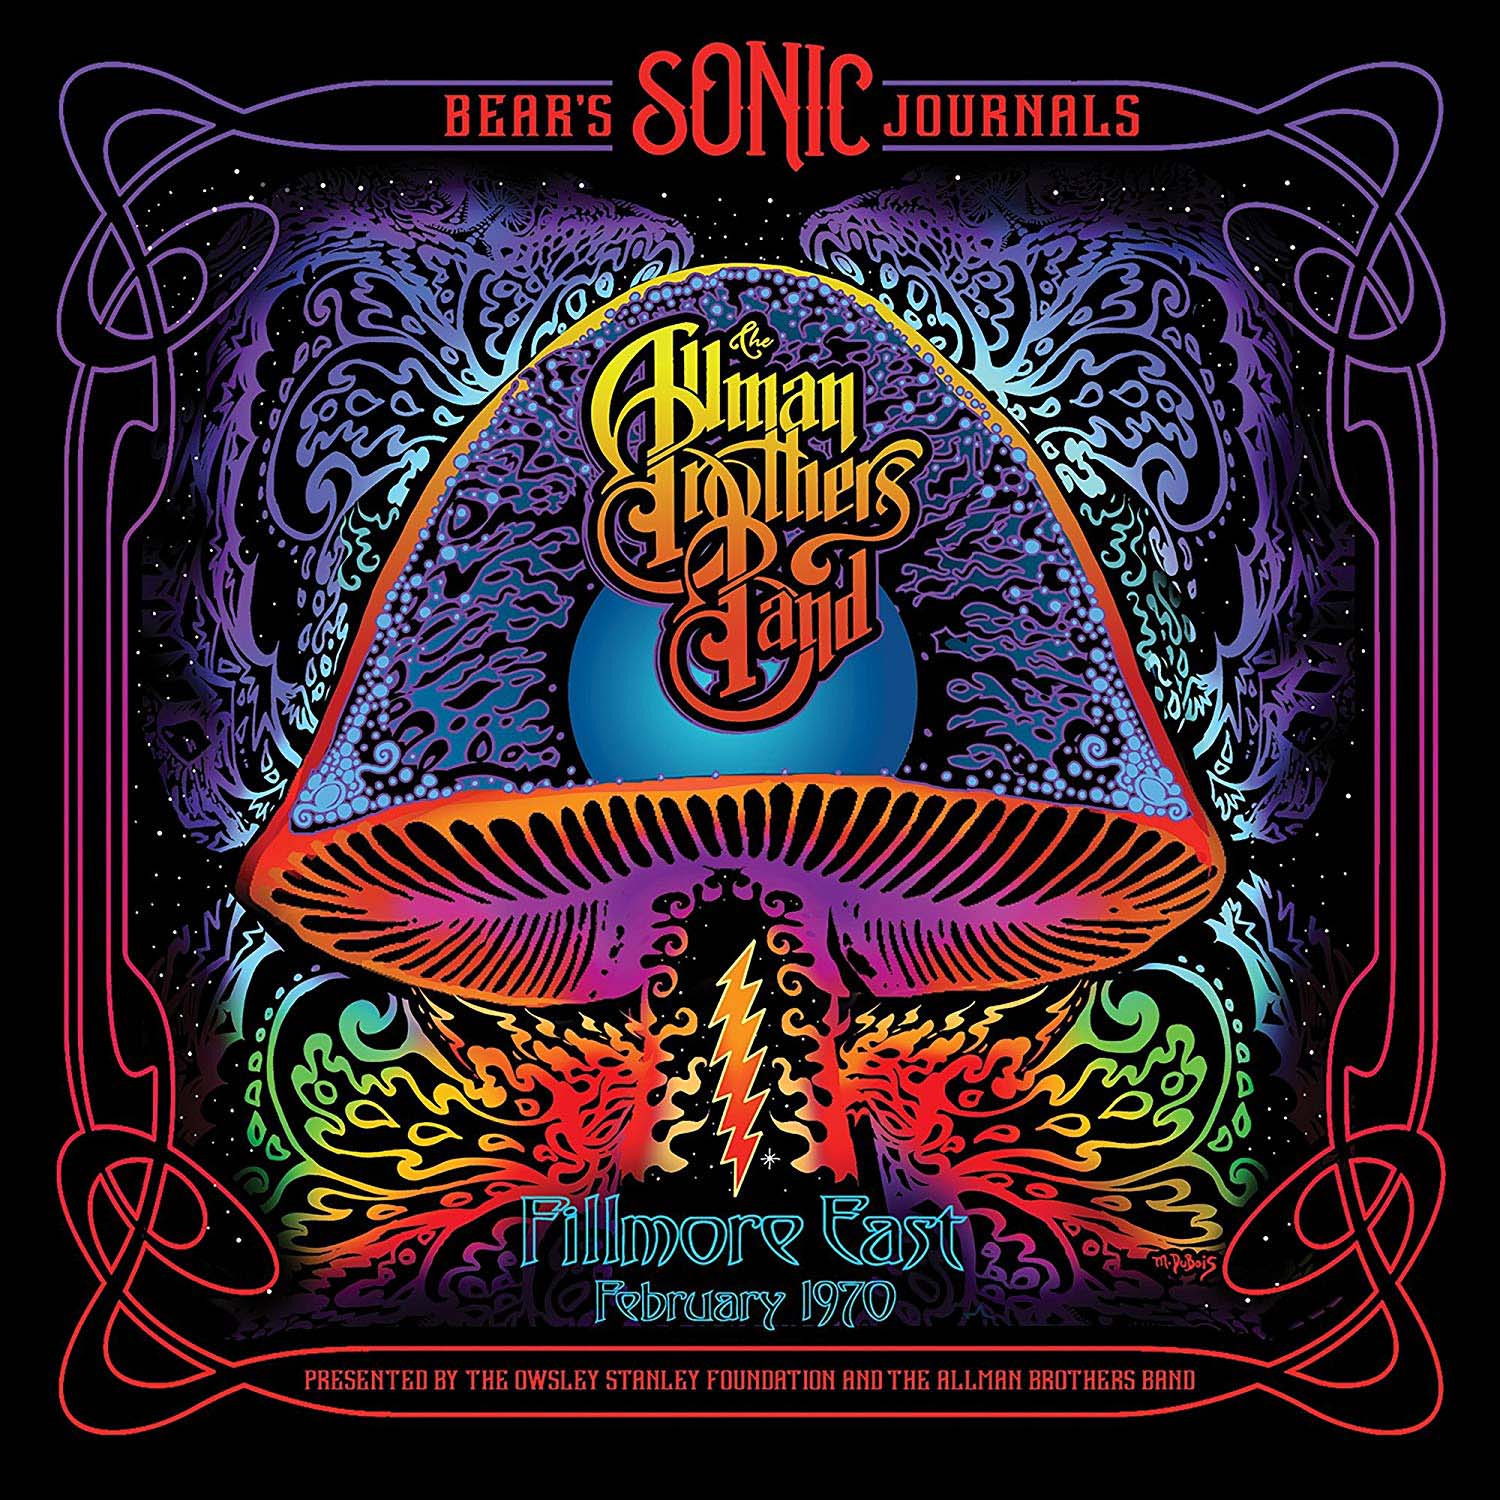 ALLMAN BROTHERS BAND (THE) - FILLMORE EAST FEBRUARY 1970 (CD)